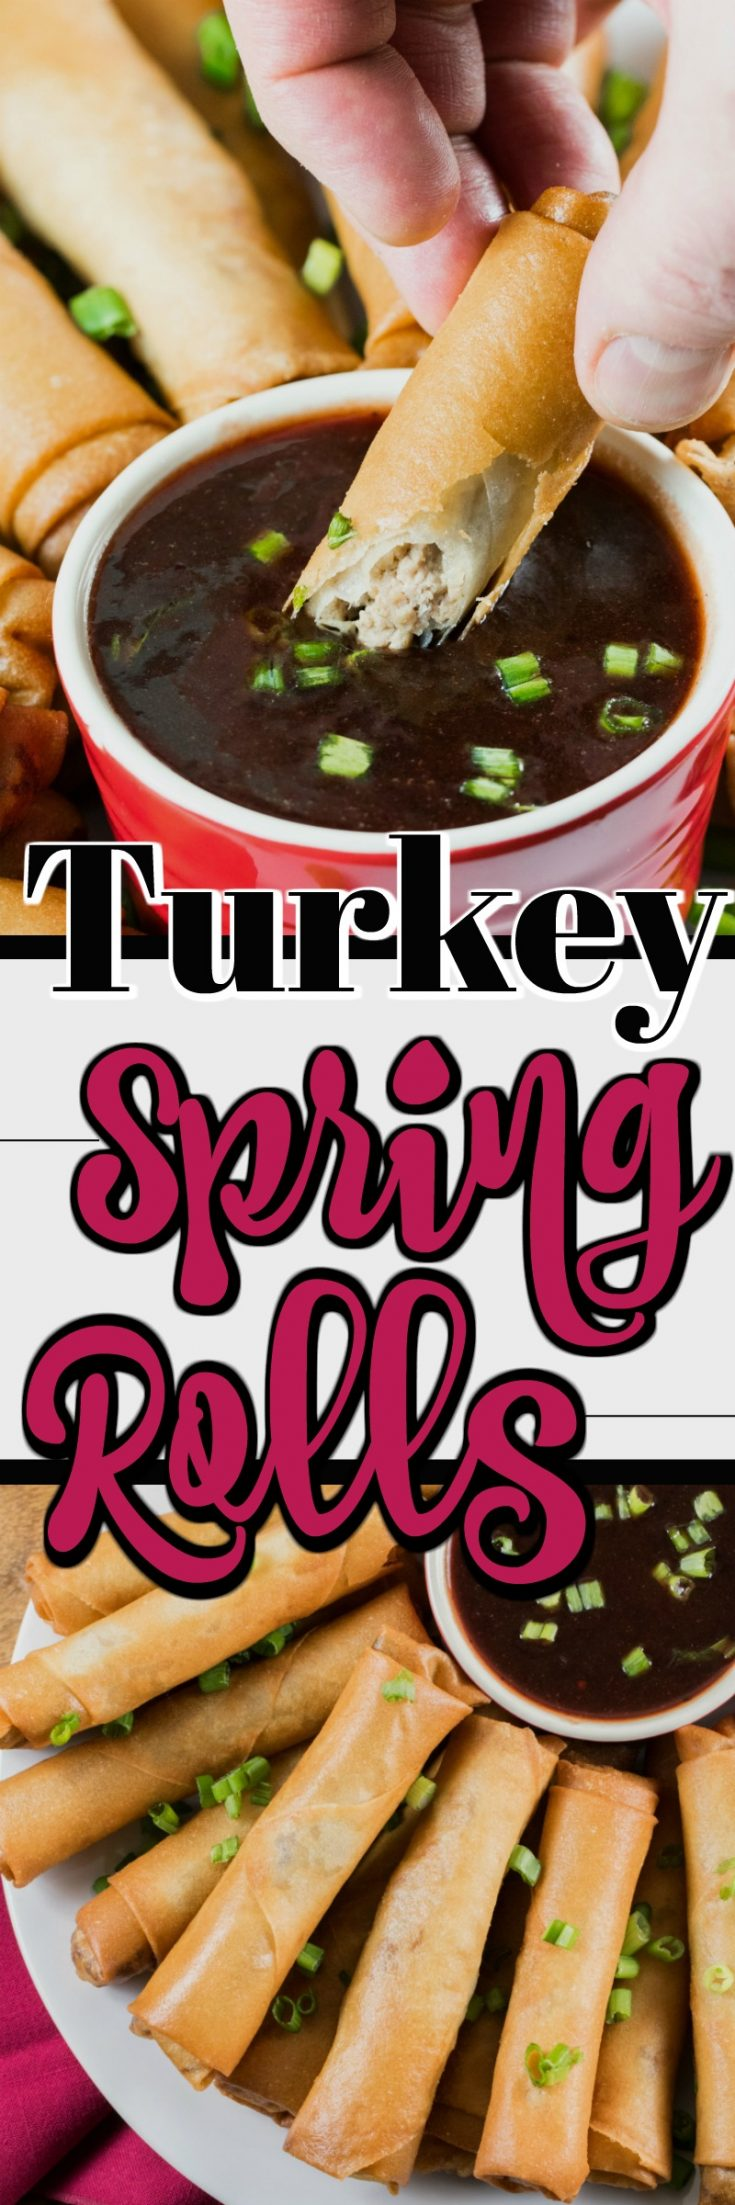 These Turkey Spring Roll Recipe with a Cranberry Dipping Sauce is perfect for the holidays for entertaining. #TurkeyTraditions #turkey #springrolls